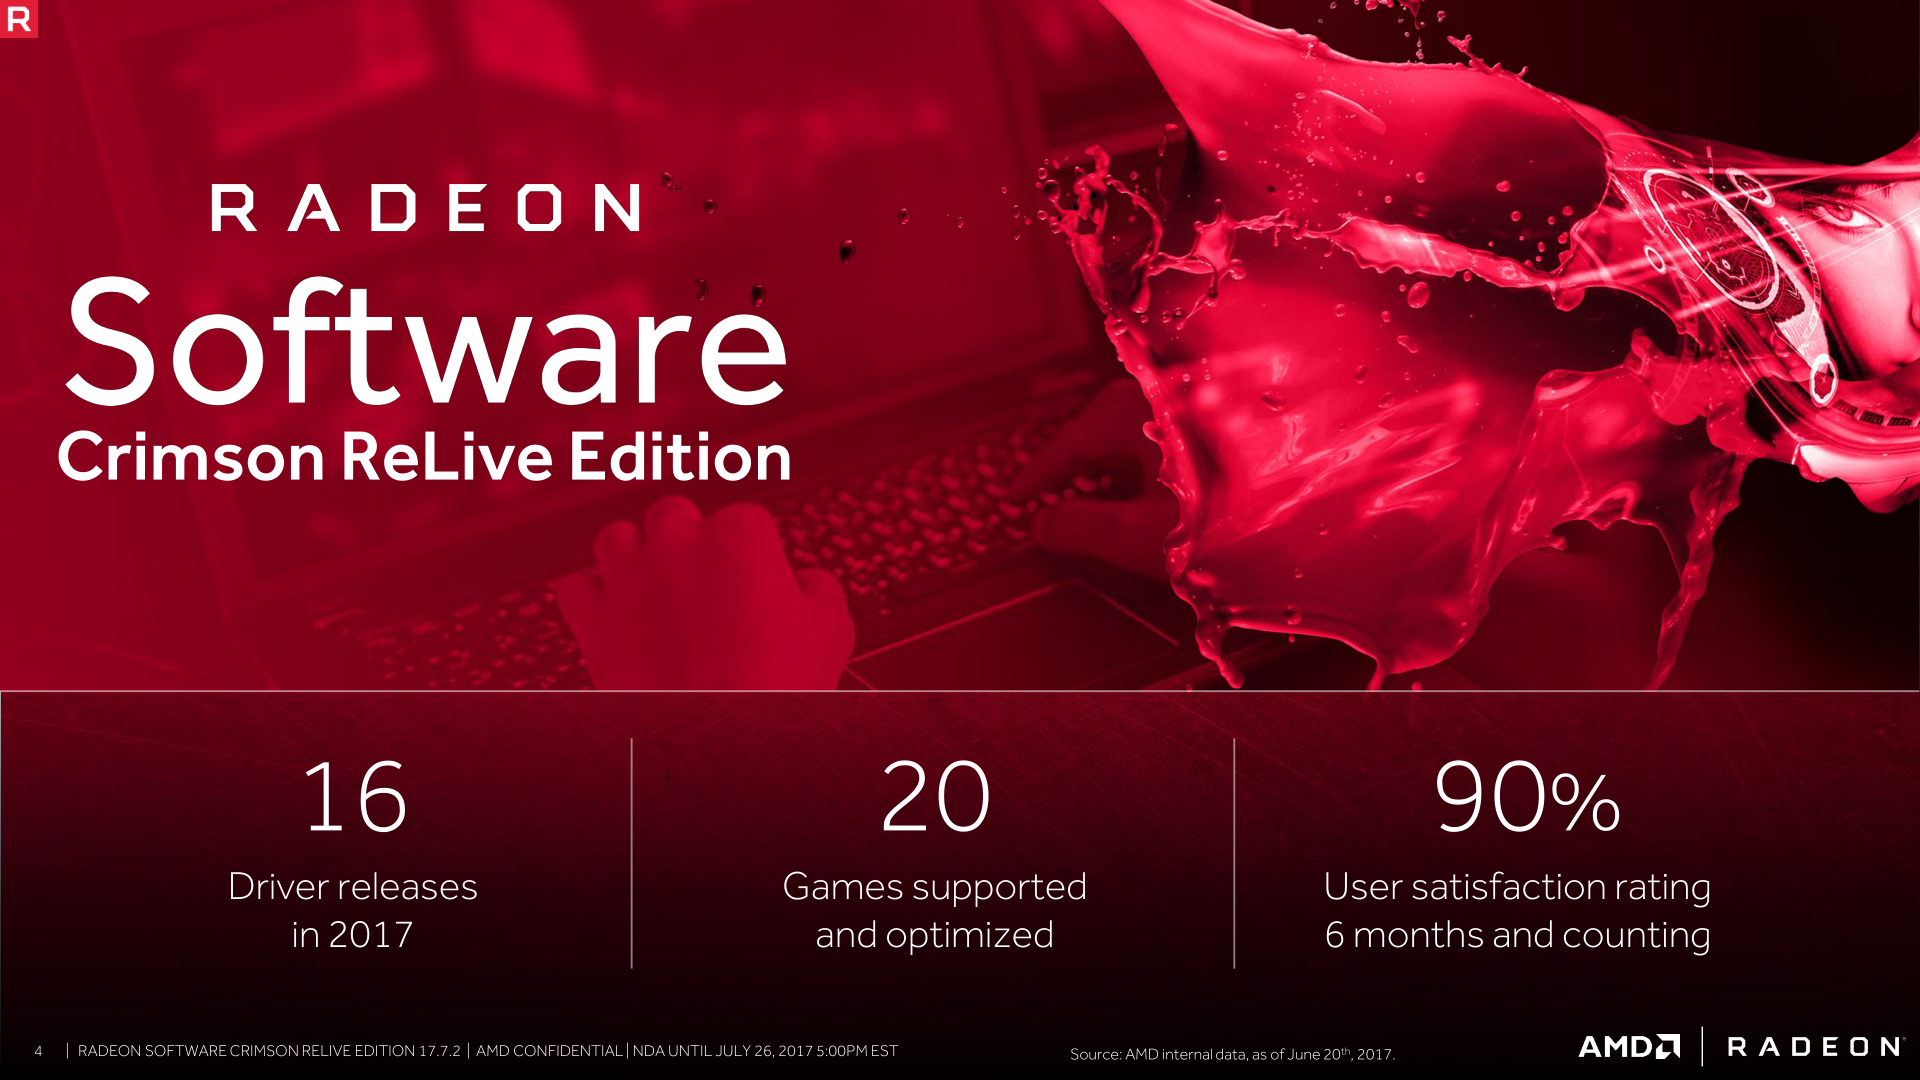 amd radeon software crimson relive edition 17.4.4 driver